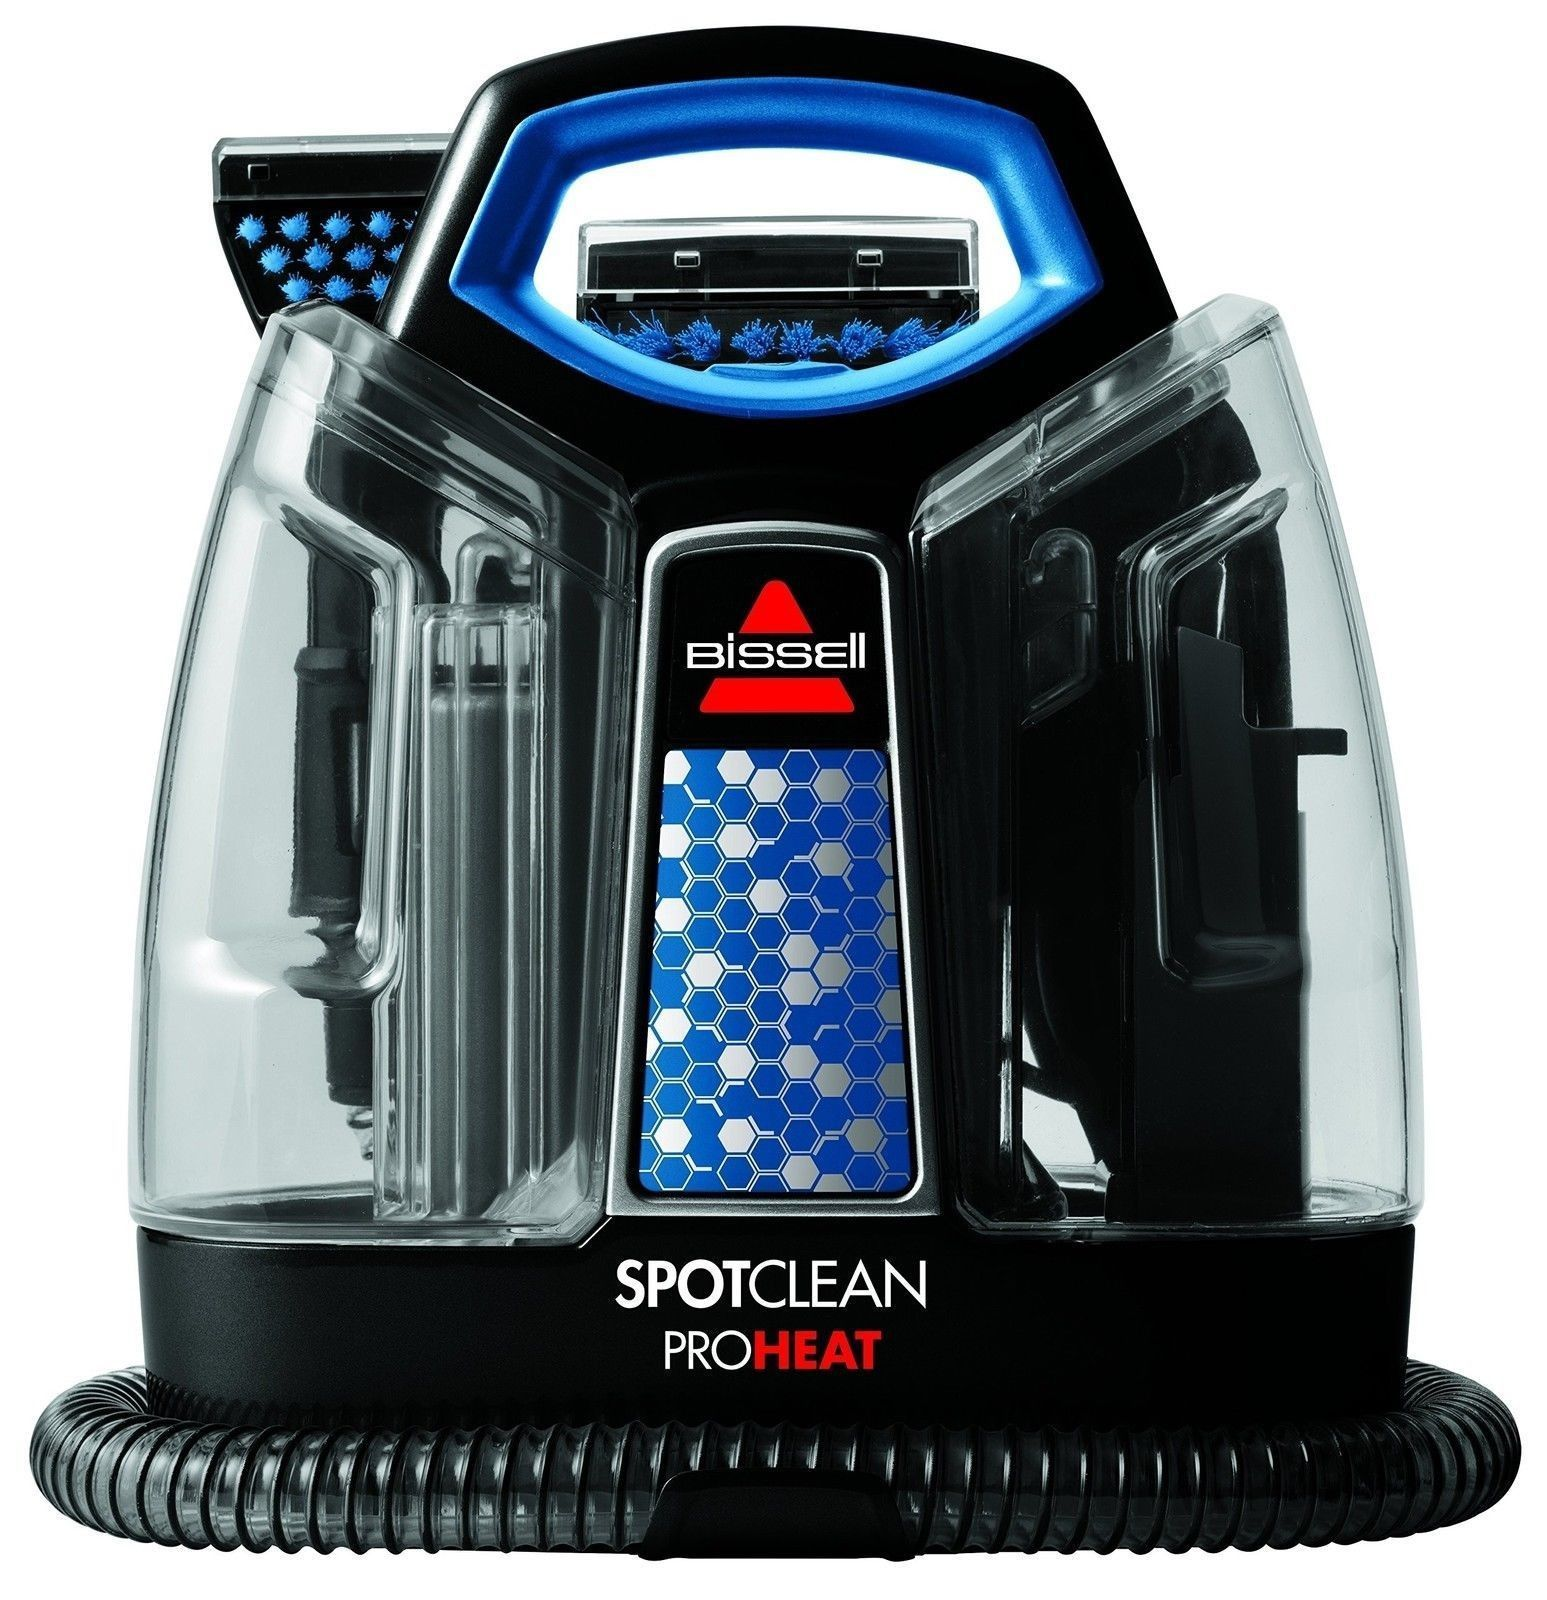 cleaner your for floor powered floors and rotating thorough knees spinwave features without pcrichard hard scrub that pcrp pads com two hands bissell effort the cleaning microfiber counter